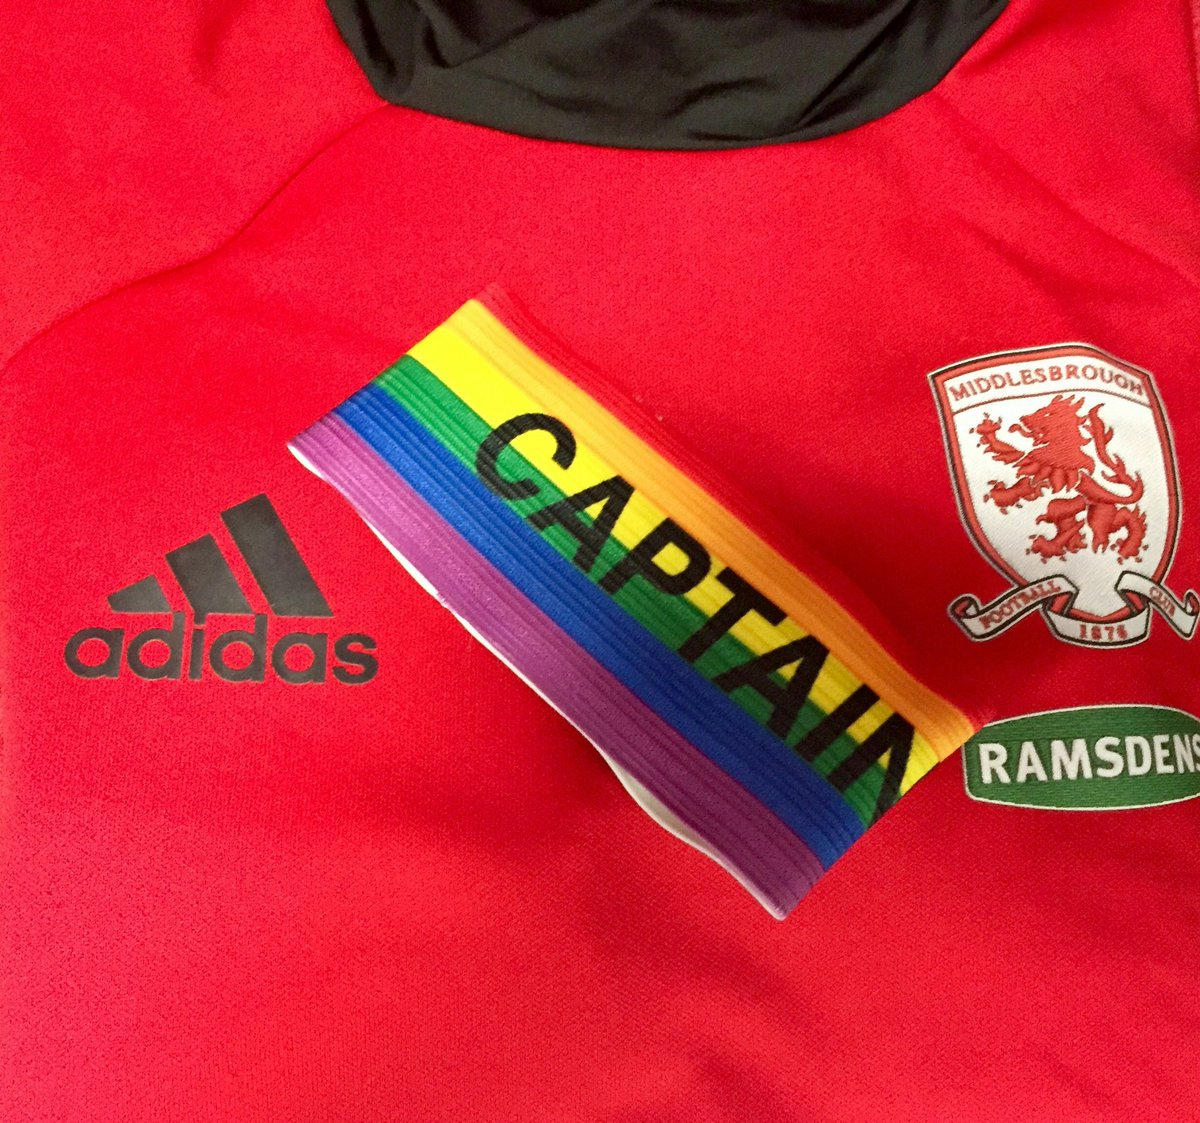 RT @Boro: Our captain will be wearing this armband today as #Boro support the @stonewalluk rainbow campaign. #UTB https://t.co/Nq6vleYQvF